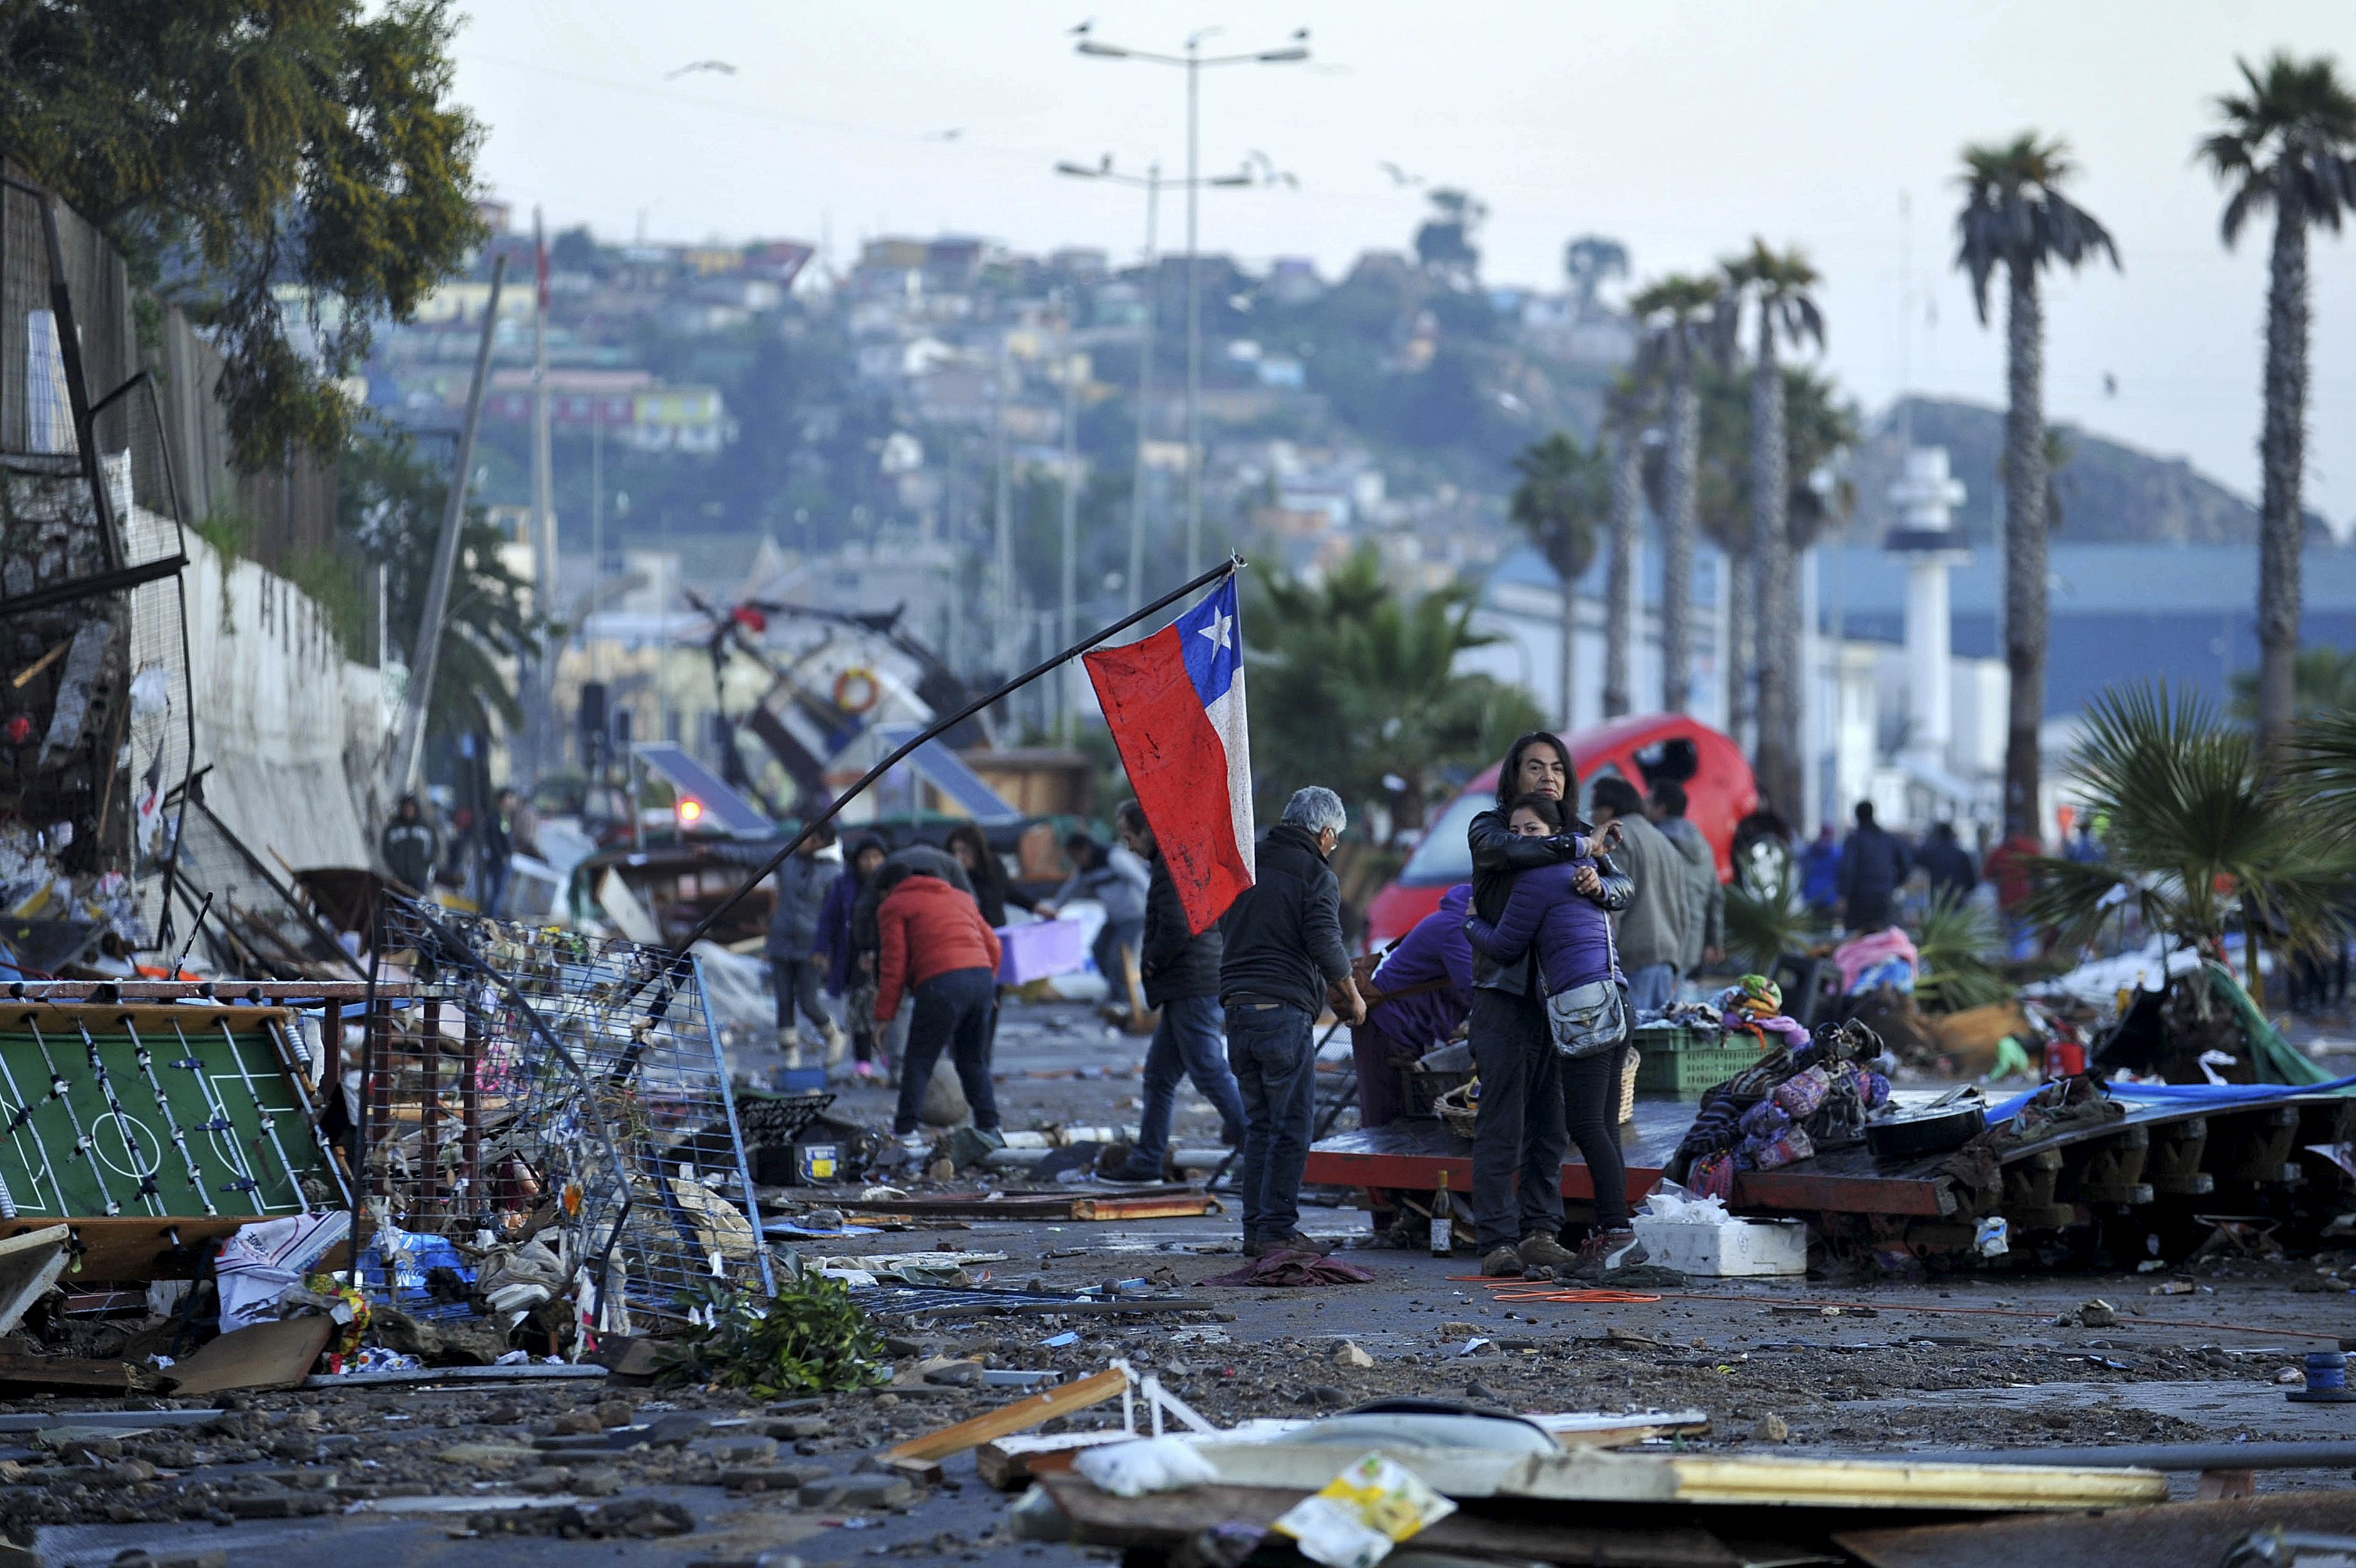 chile earthquake Planning before a 83-magnitude earthquake minimized the severity of the disaster that struck off chile at least 11 people died, and aftershocks continue.